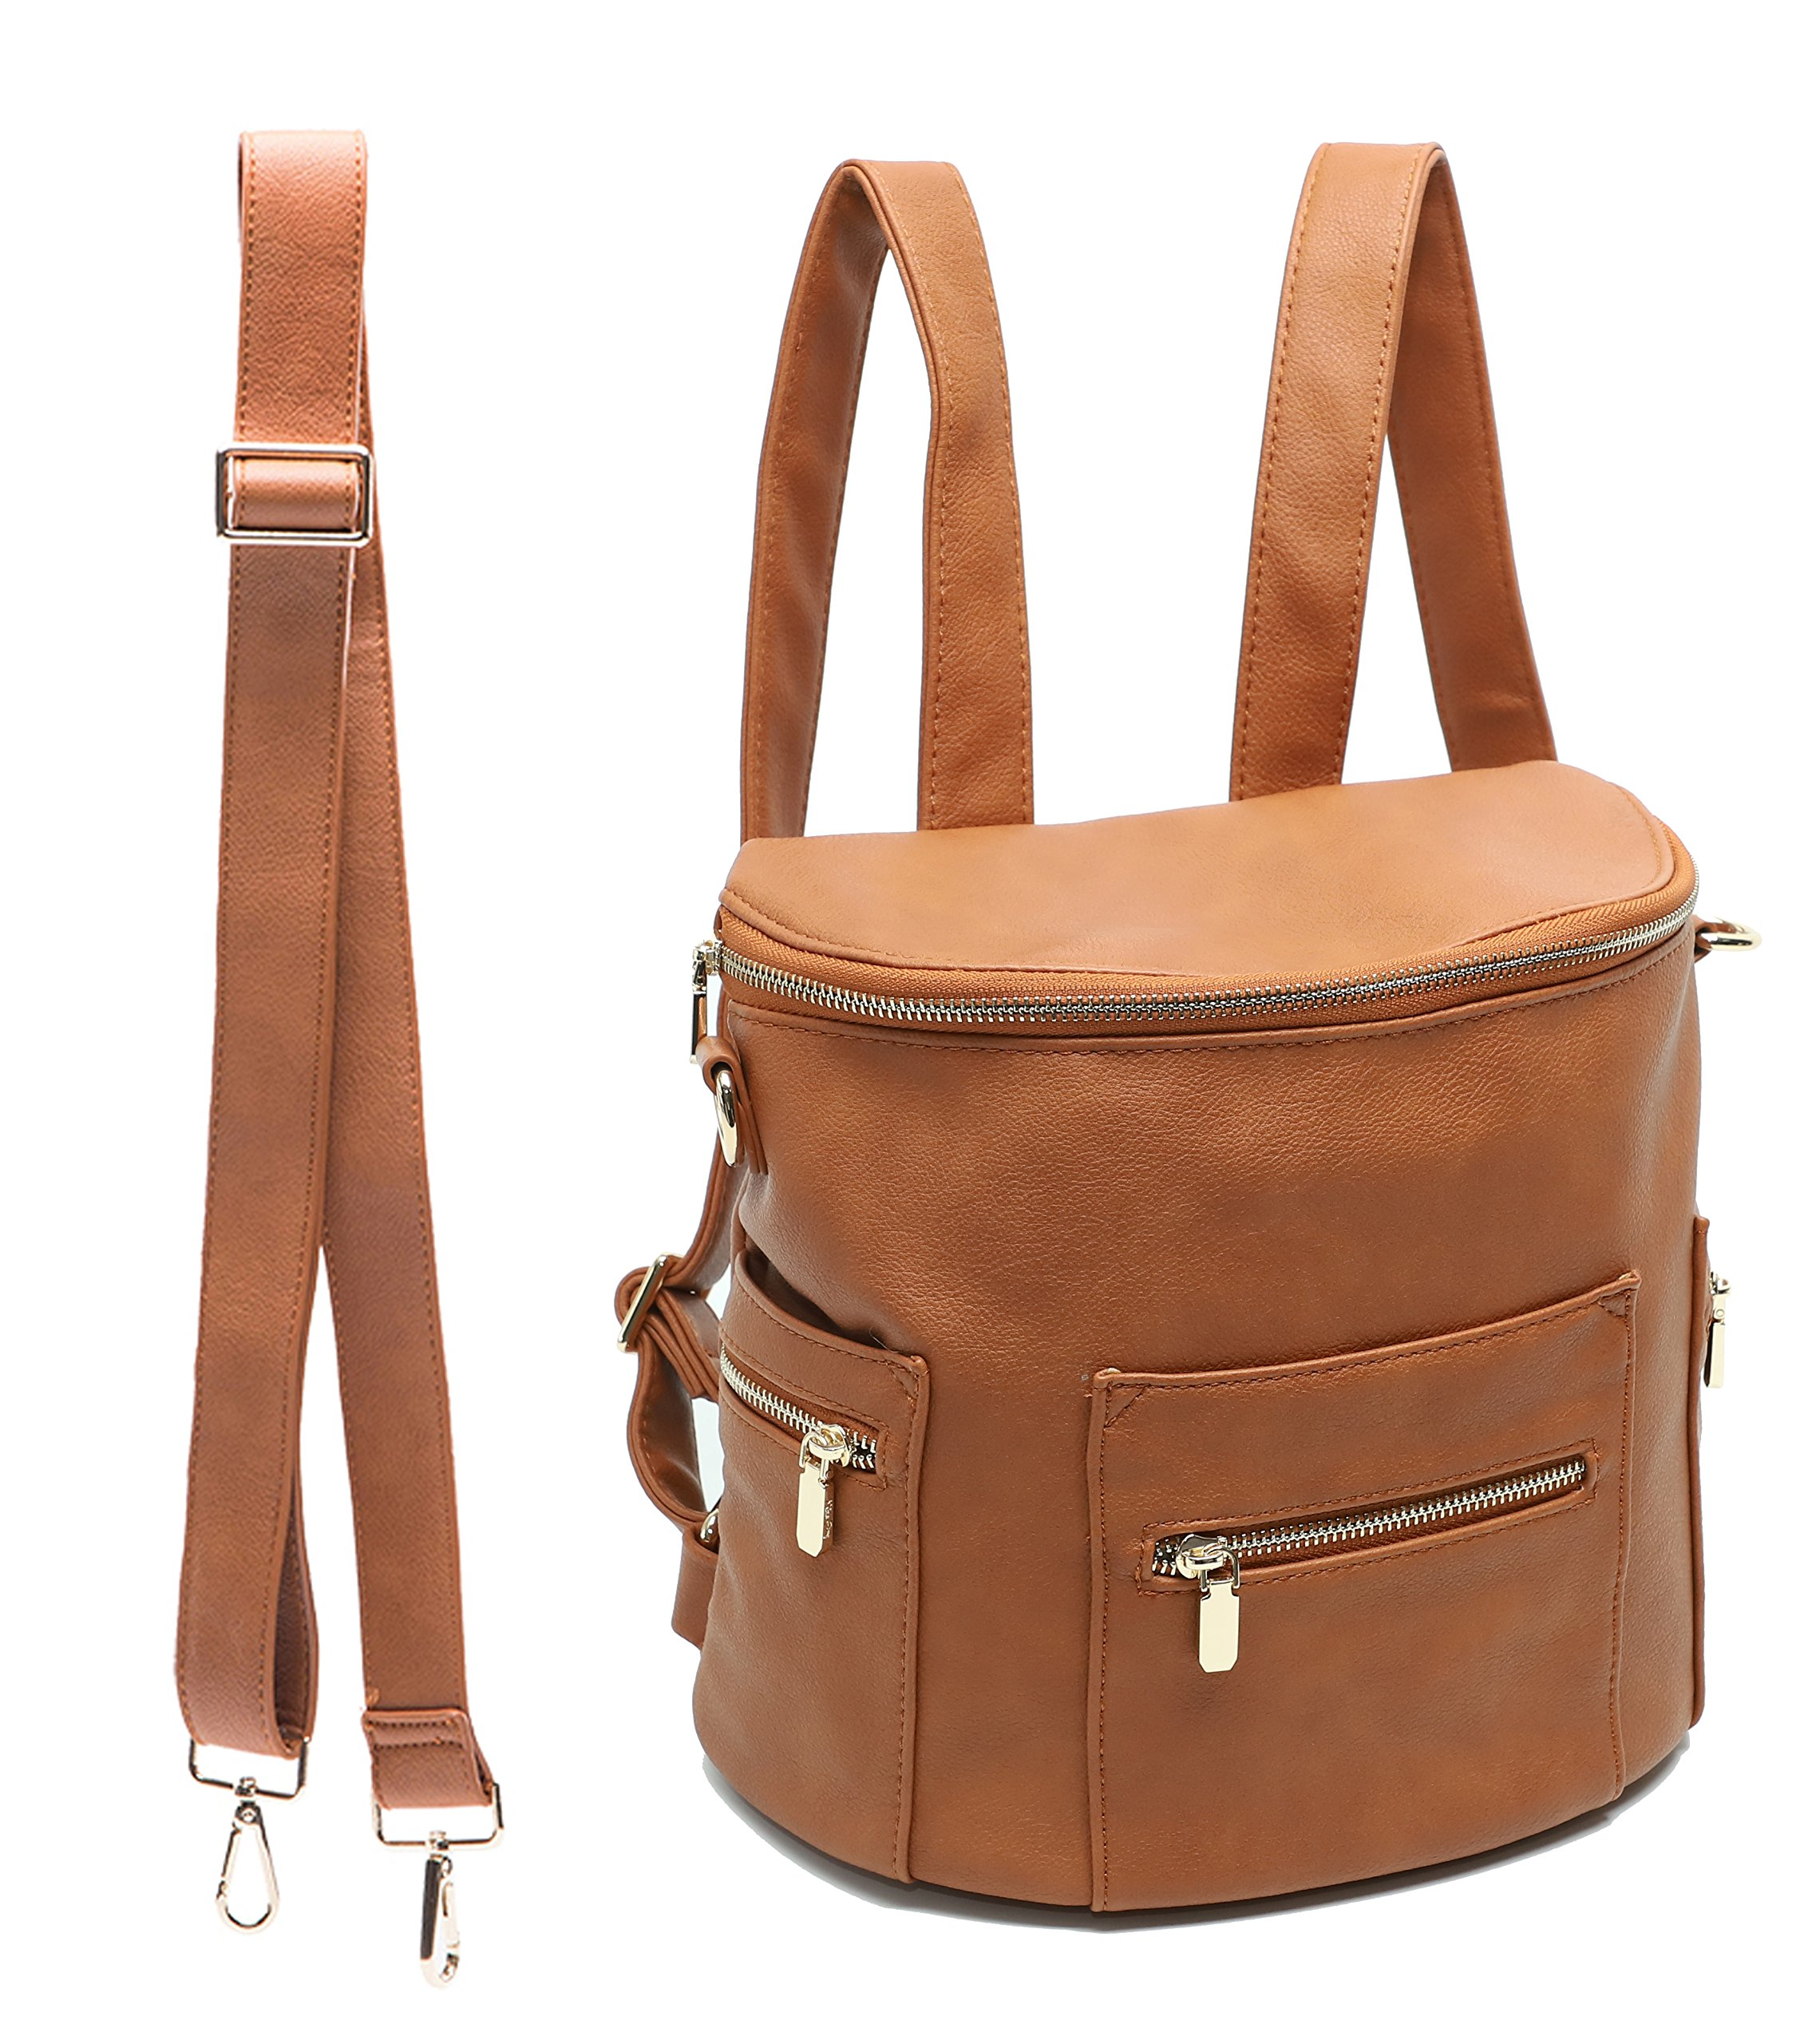 miss fong Mini Backpack by, Toddler Backpack Kids Backpack Diaper Bag for Mom with Insulated pockets, Handle and Crossbody Strap(Brown)